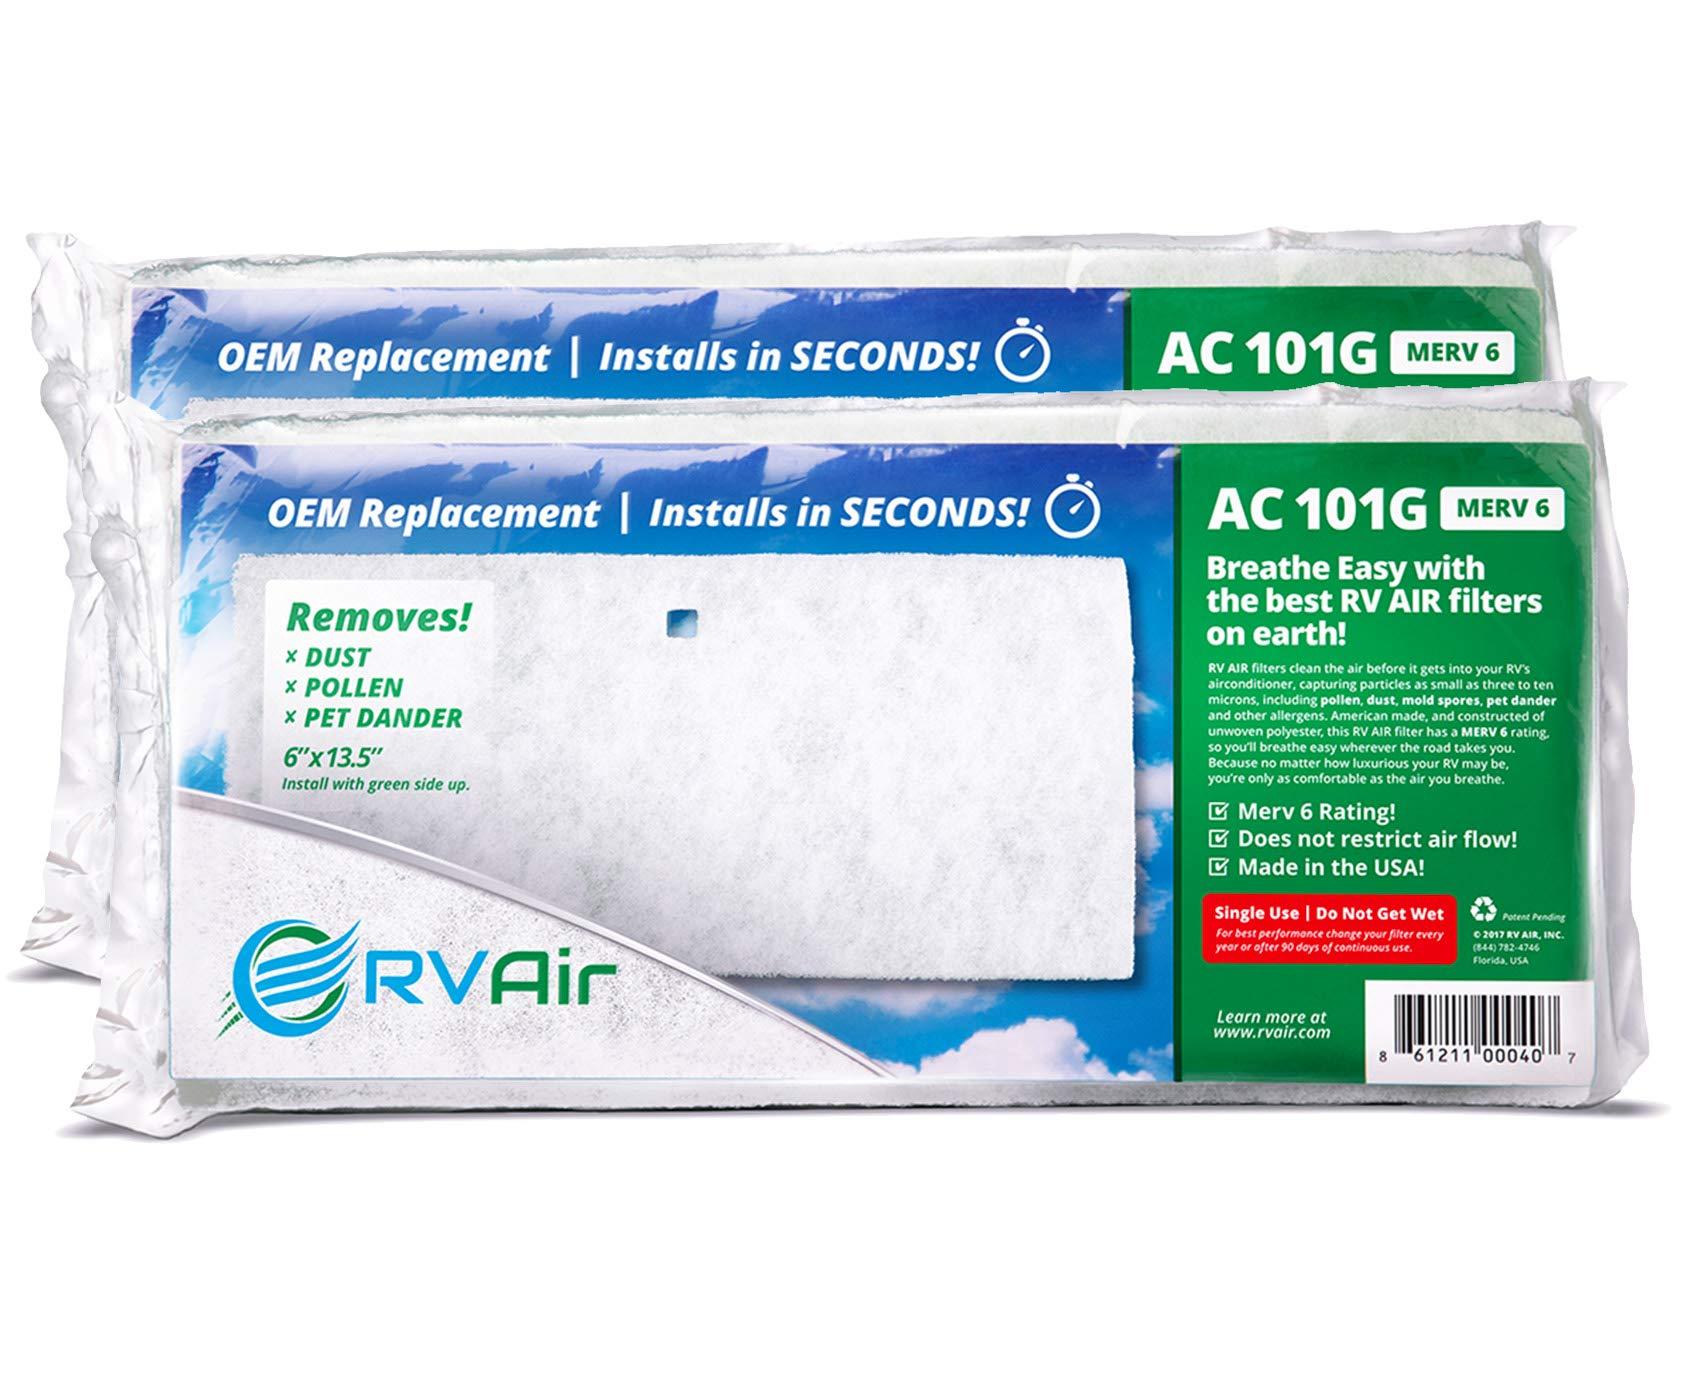 RV Air RV AC Filter   AC 101G Air Filters for RV Air Conditioner   Made in USA RV Filter to Replace Standard RV Air Conditioner Filters for Better Airflow and Cleaner Air   MERV 6 Rated - 2 Filters by RVAIR